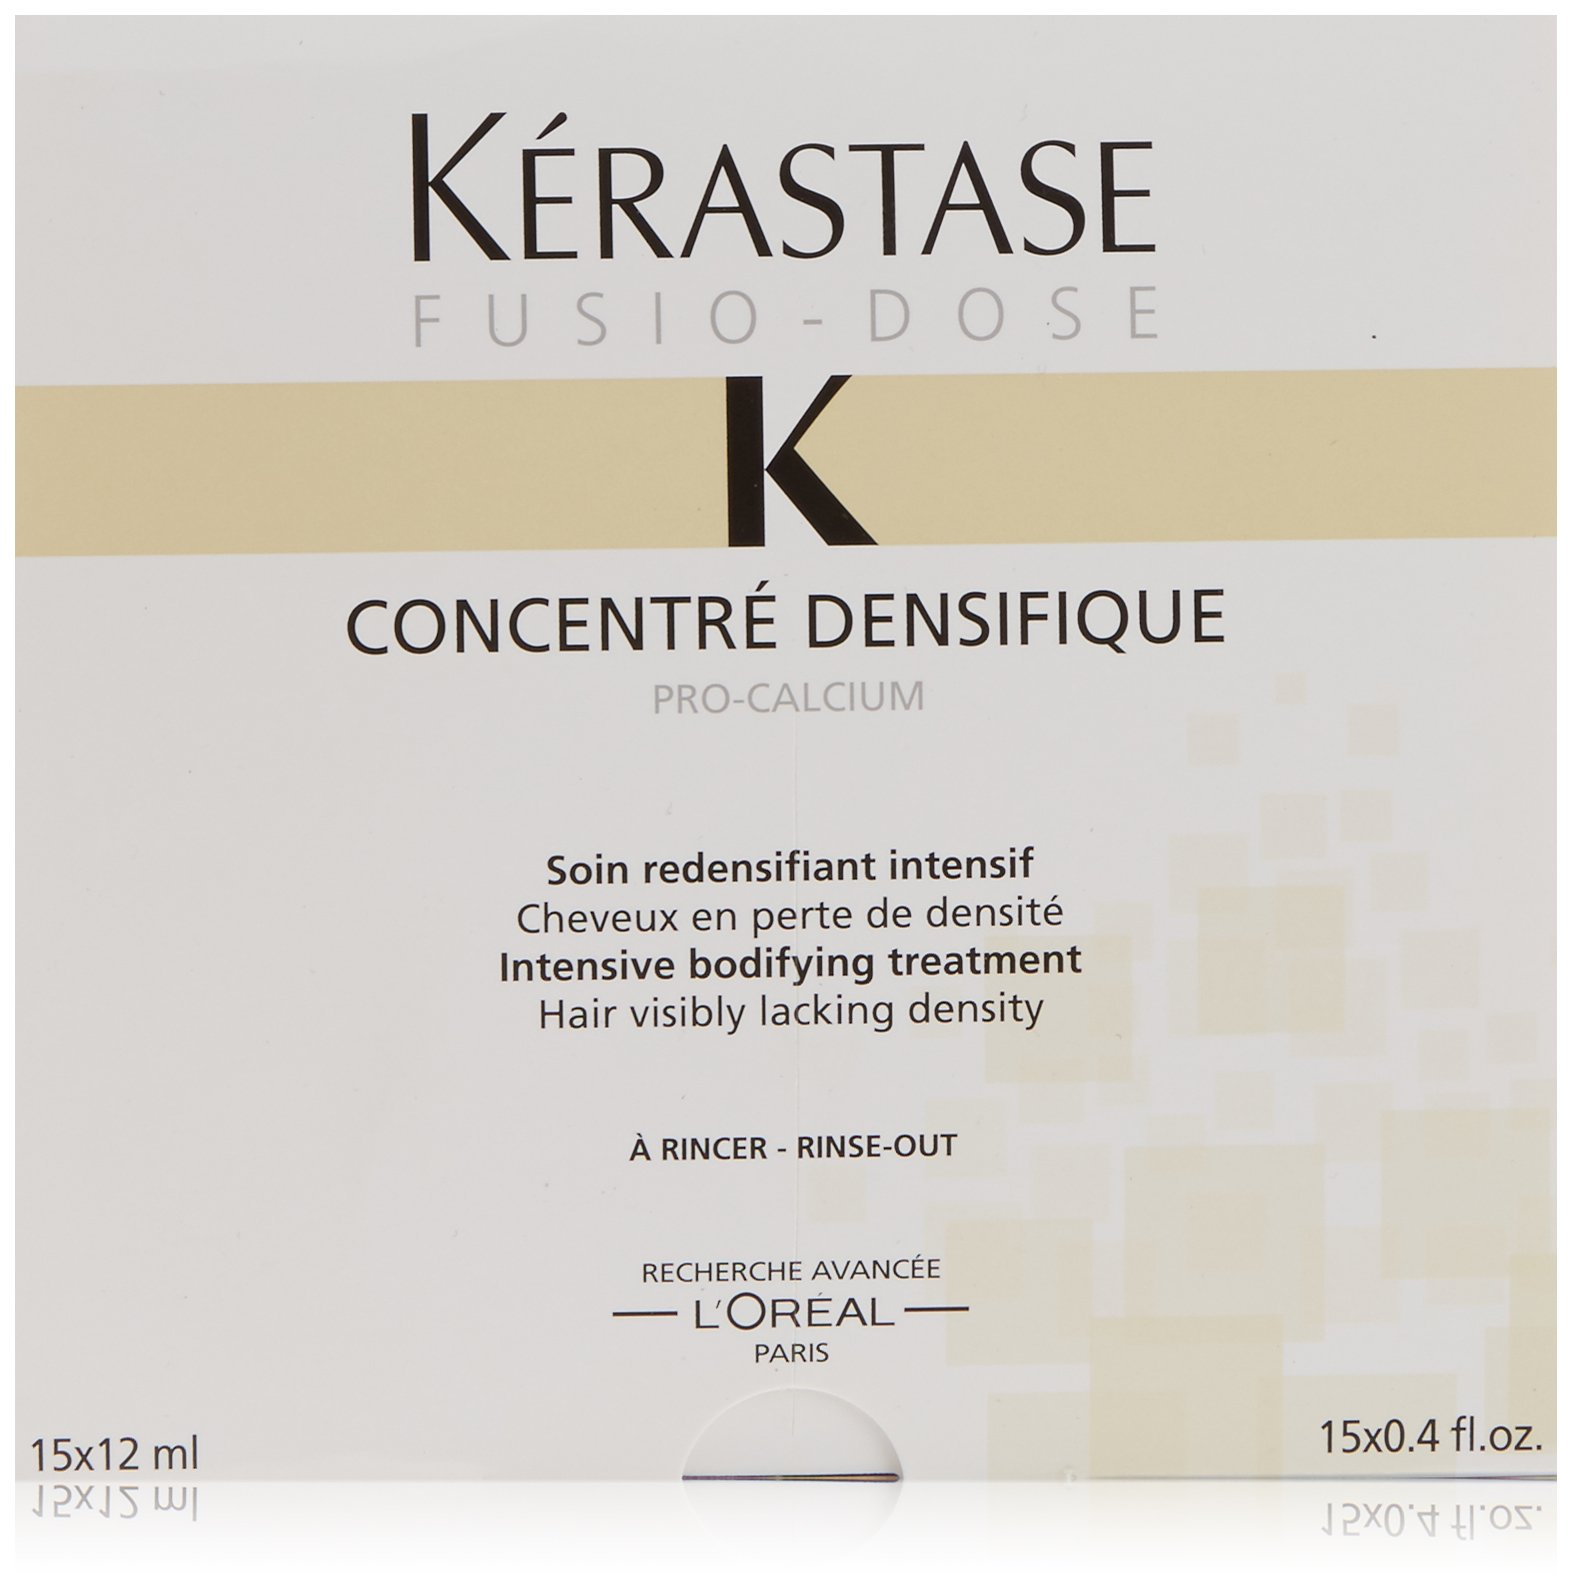 Kerastase Fusio-Dose Concentre Densifique Intensive Bodifying Treatment, 15 Count by Kerastase (Image #1)